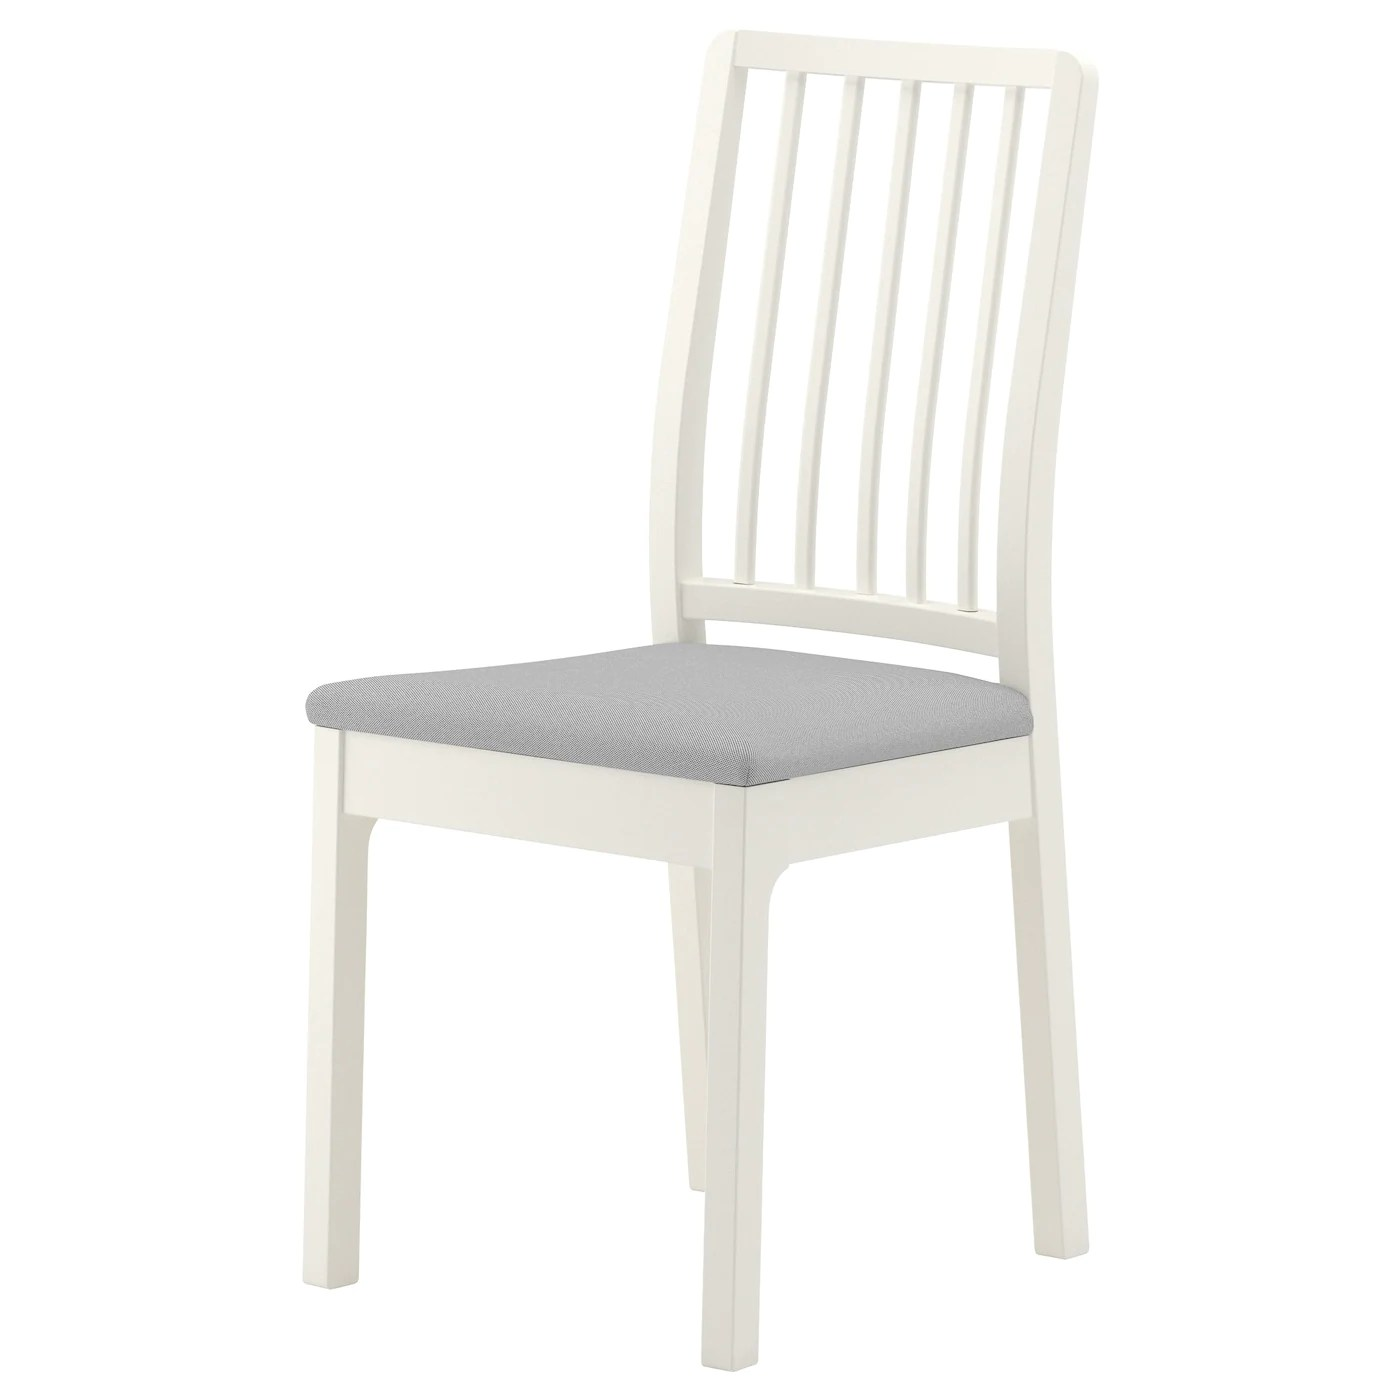 white chair ikea childrens soft chairs stools and benches